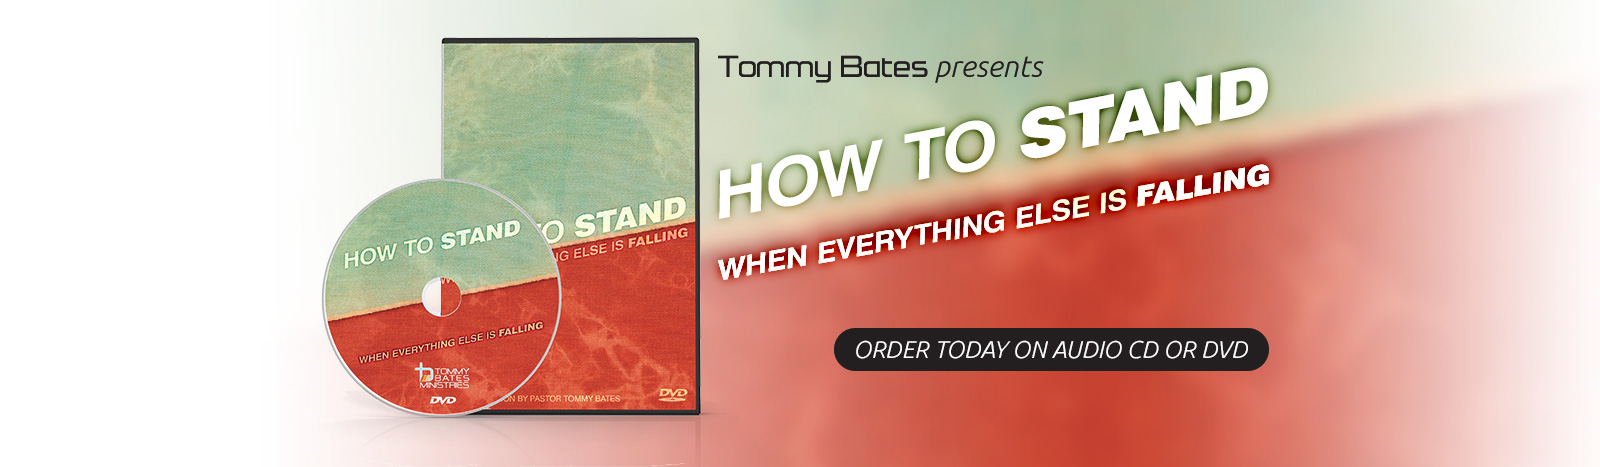 How to Stand When Everything is Falling CD/DVD Promo